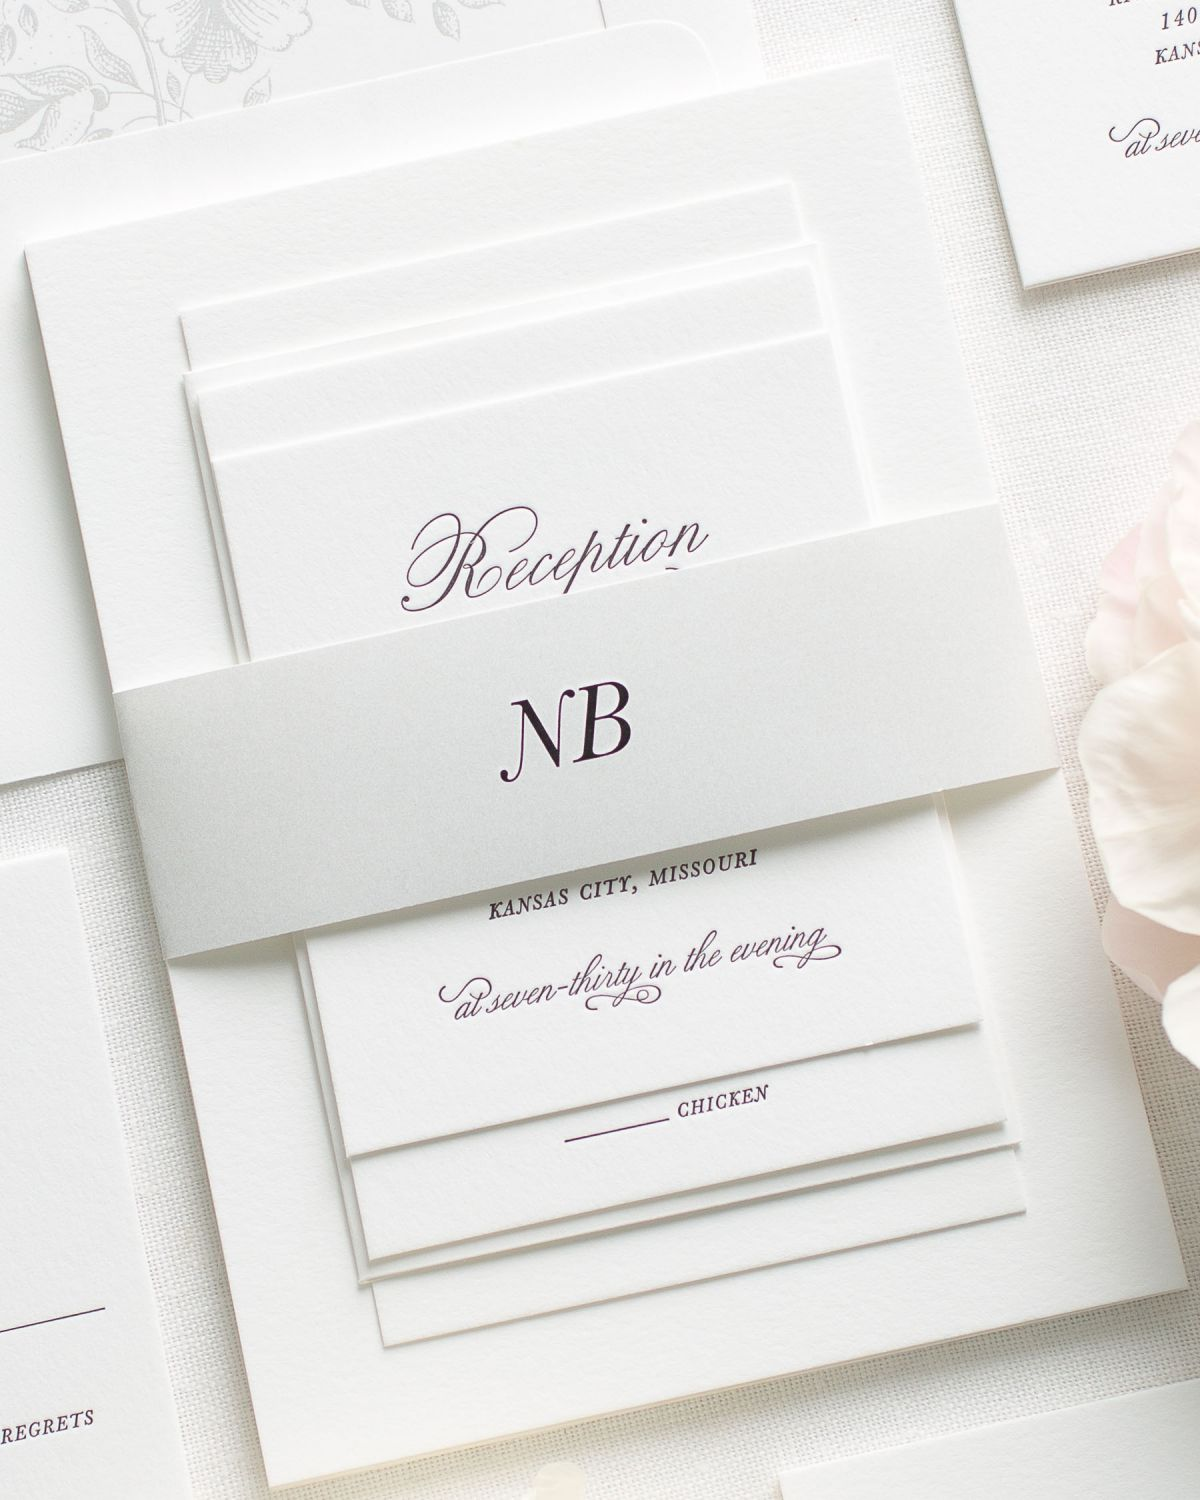 Letterpress Wedding Invitations with a belly band